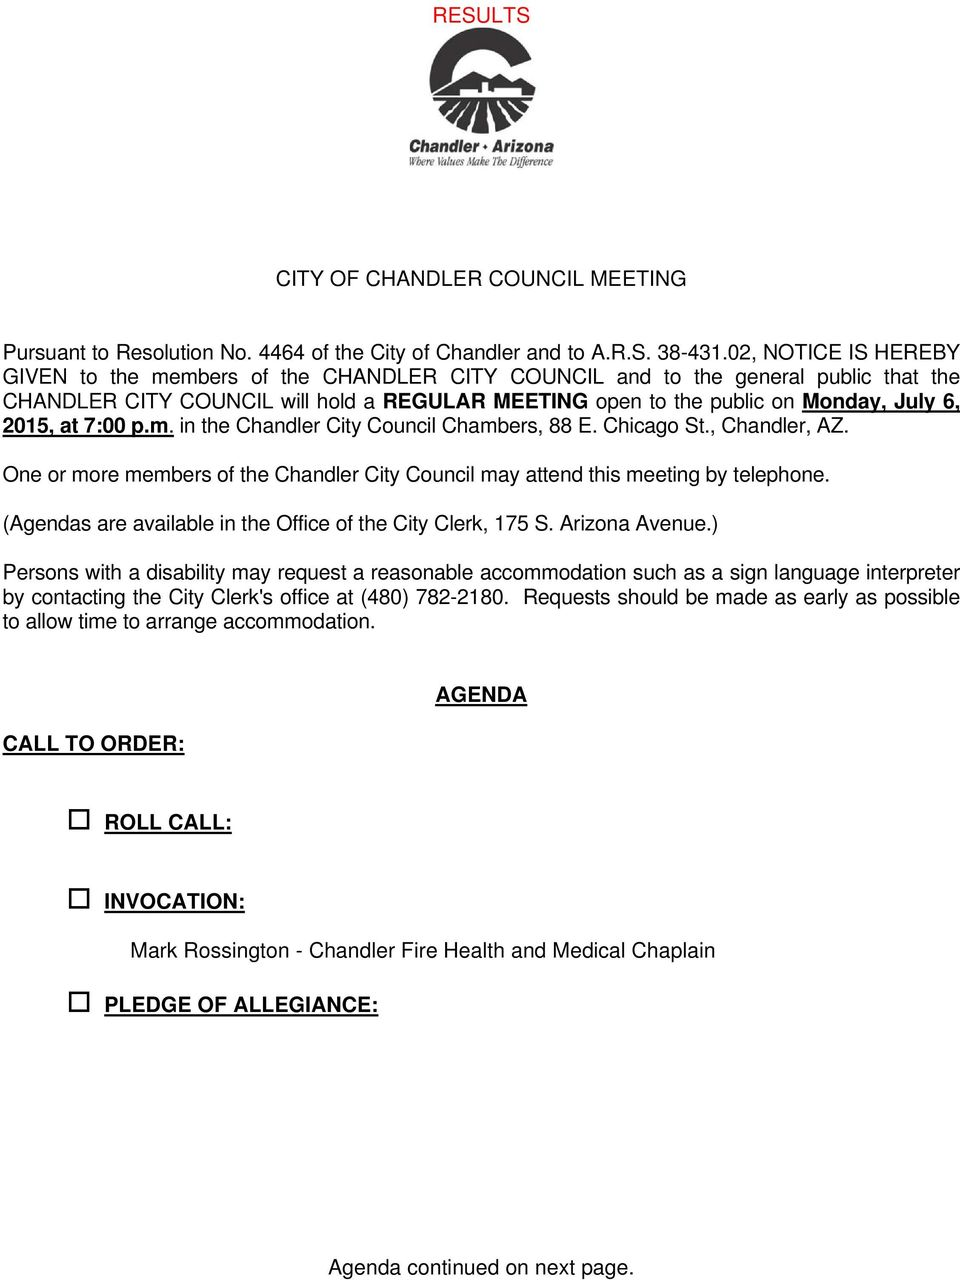 at 7:00 p.m. in the Chandler City Council Chambers, 88 E. Chicago St., Chandler, AZ. One or more members of the Chandler City Council may attend this meeting by telephone.